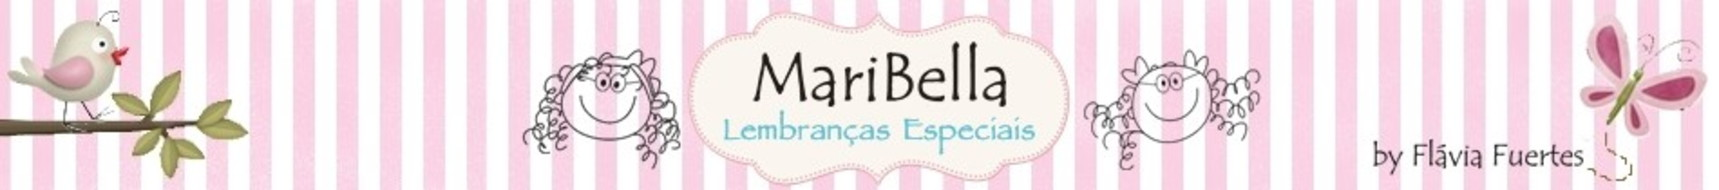 MariBella Lembranas Especiais